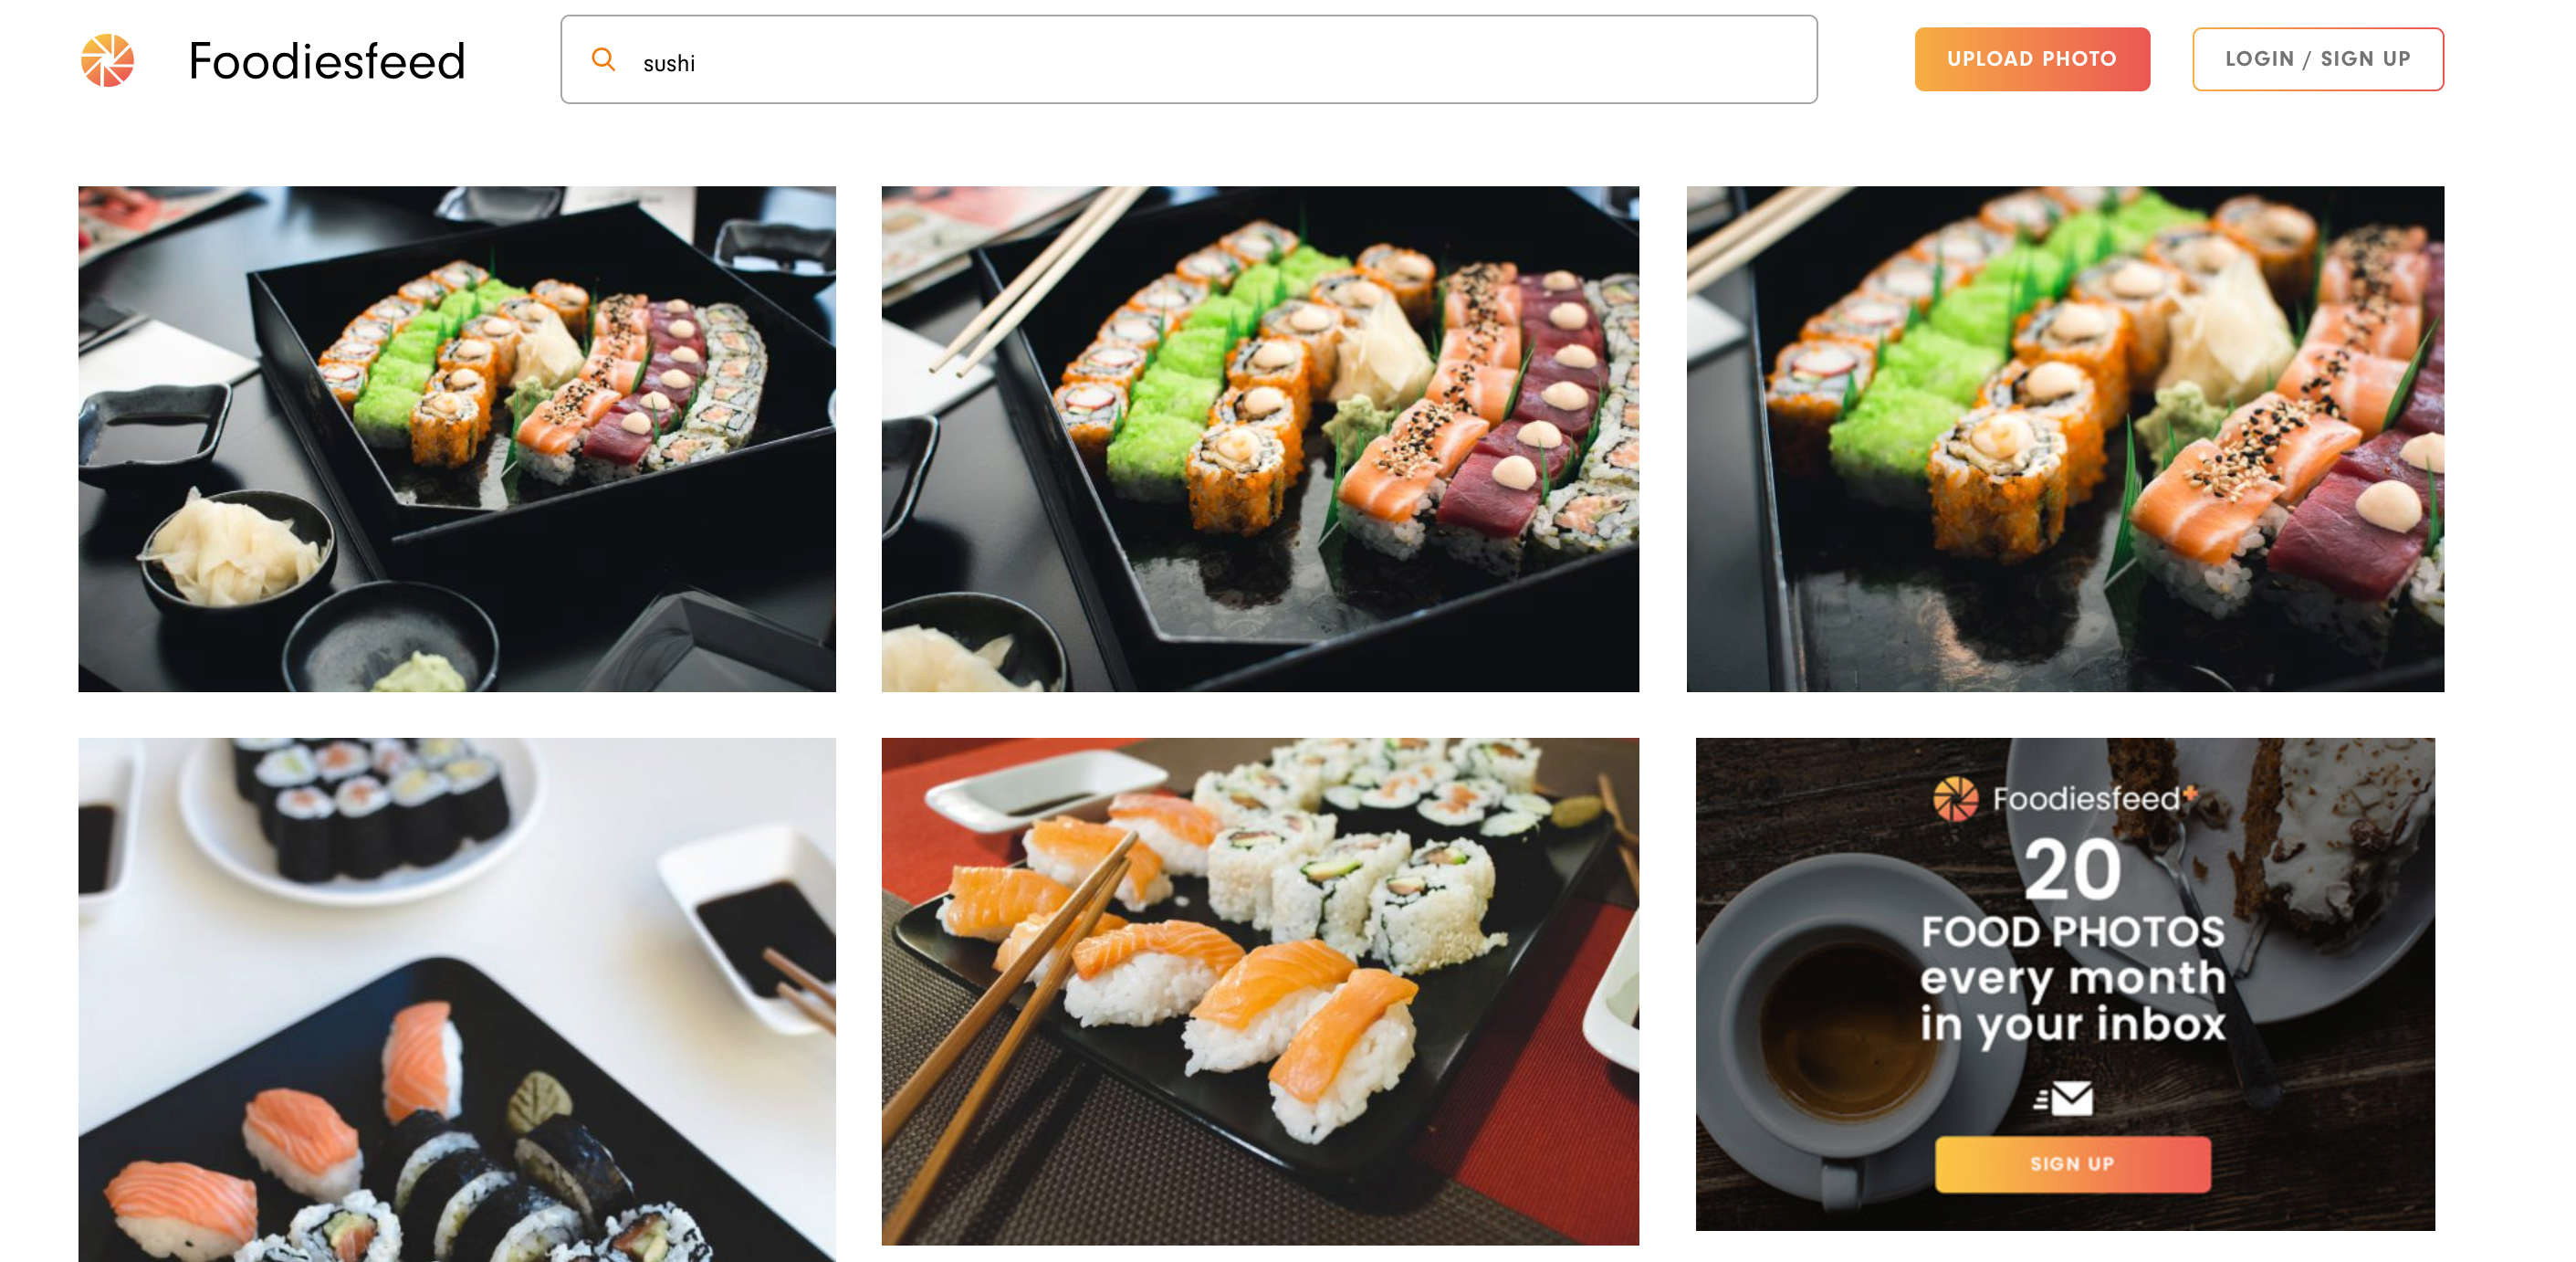 foodies feed royalty free images